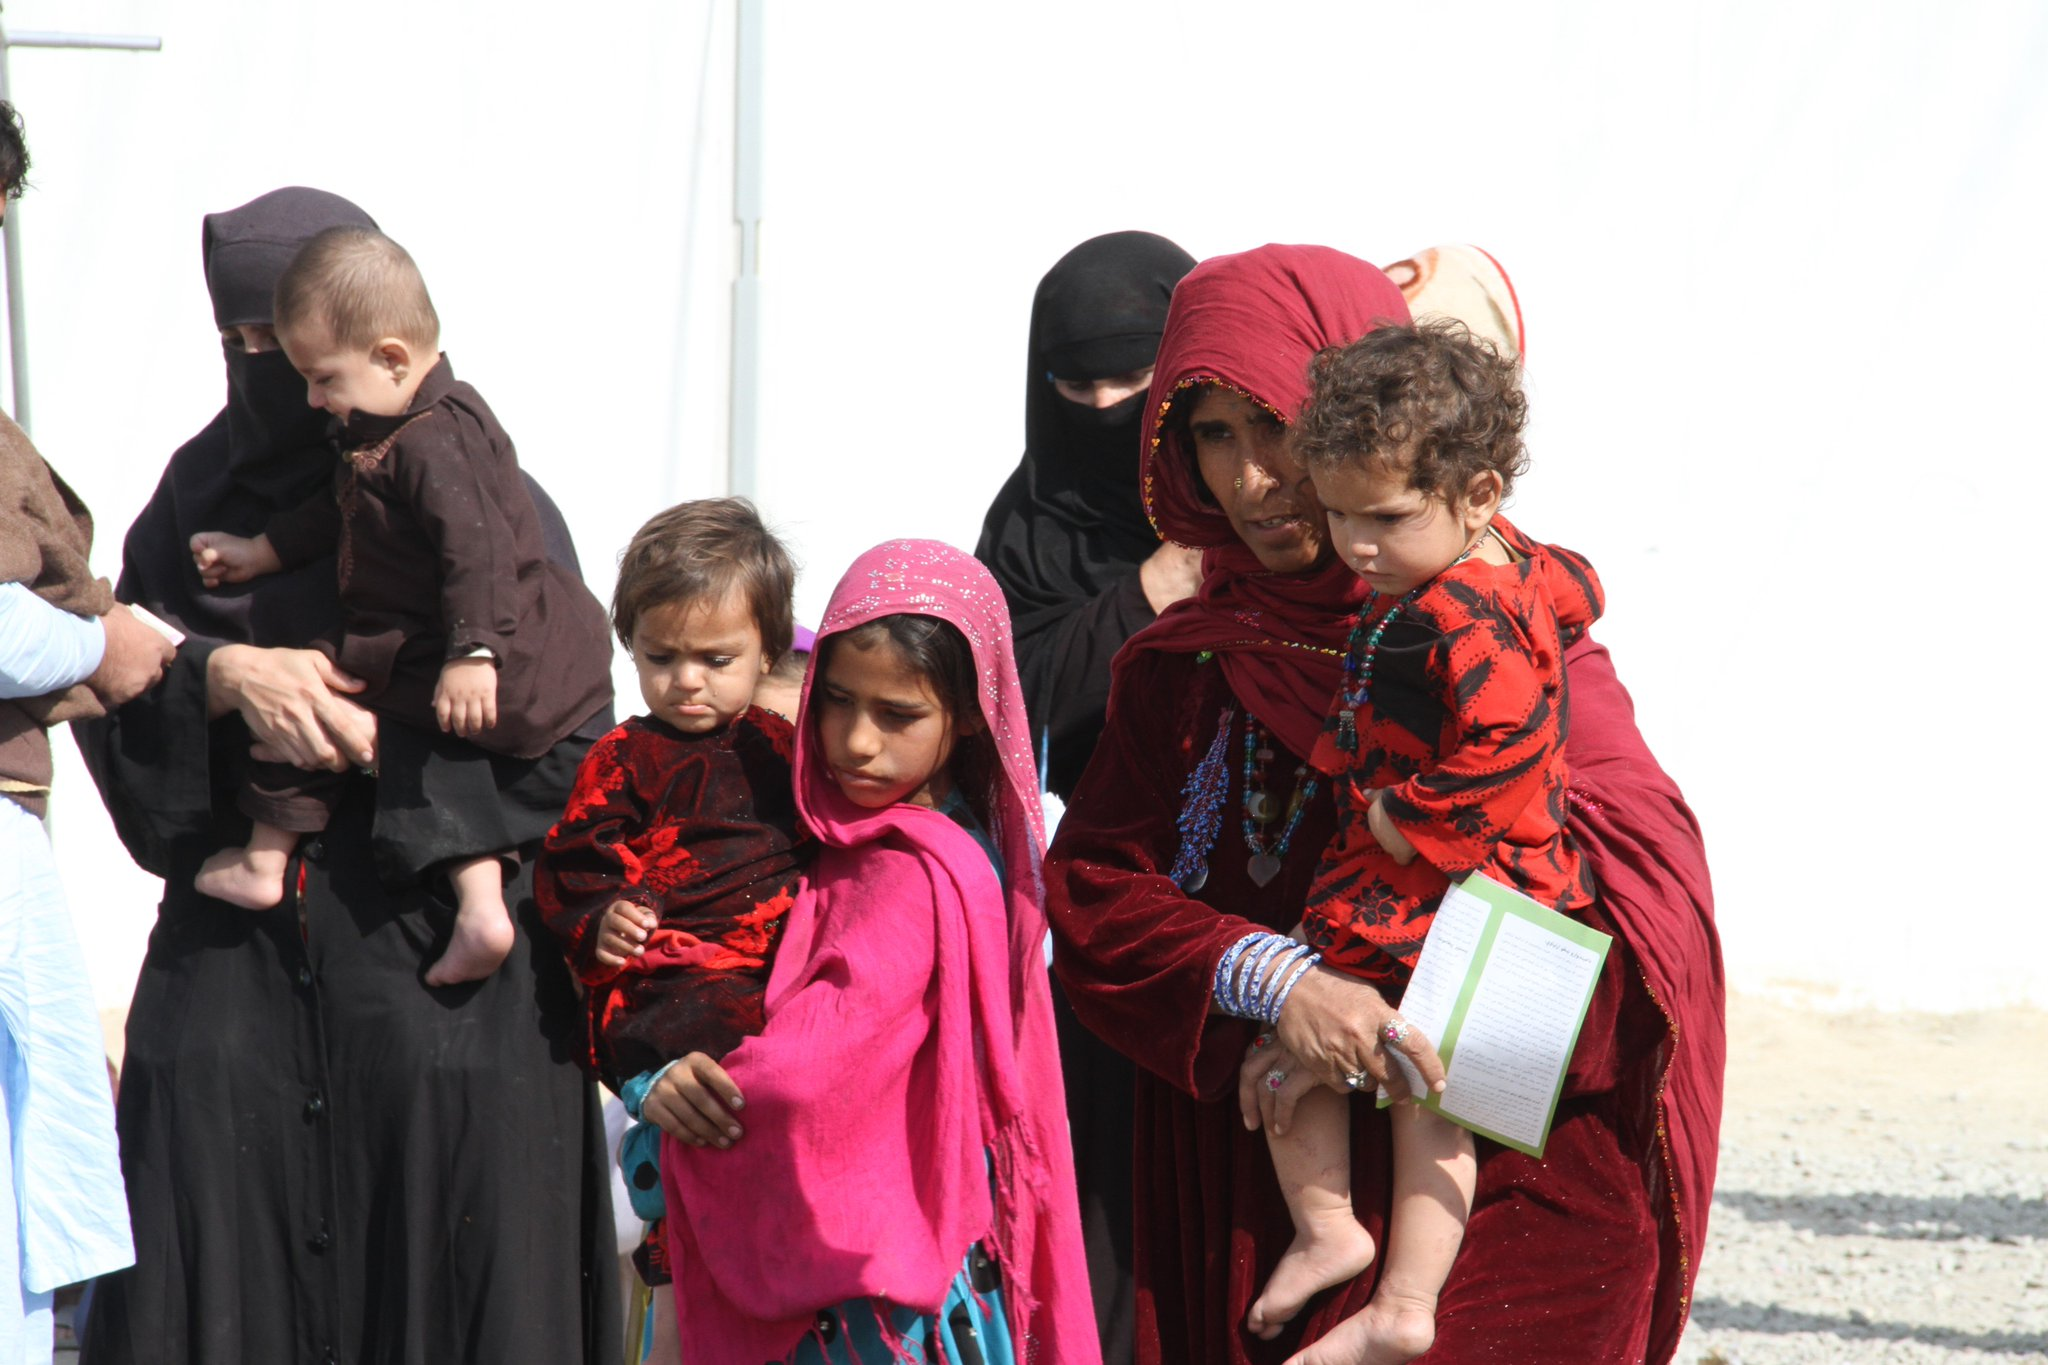 Thumbnail for Assault on Abortion; World's Largest Mass Forced Return of Refugees: HRW Daily Brief